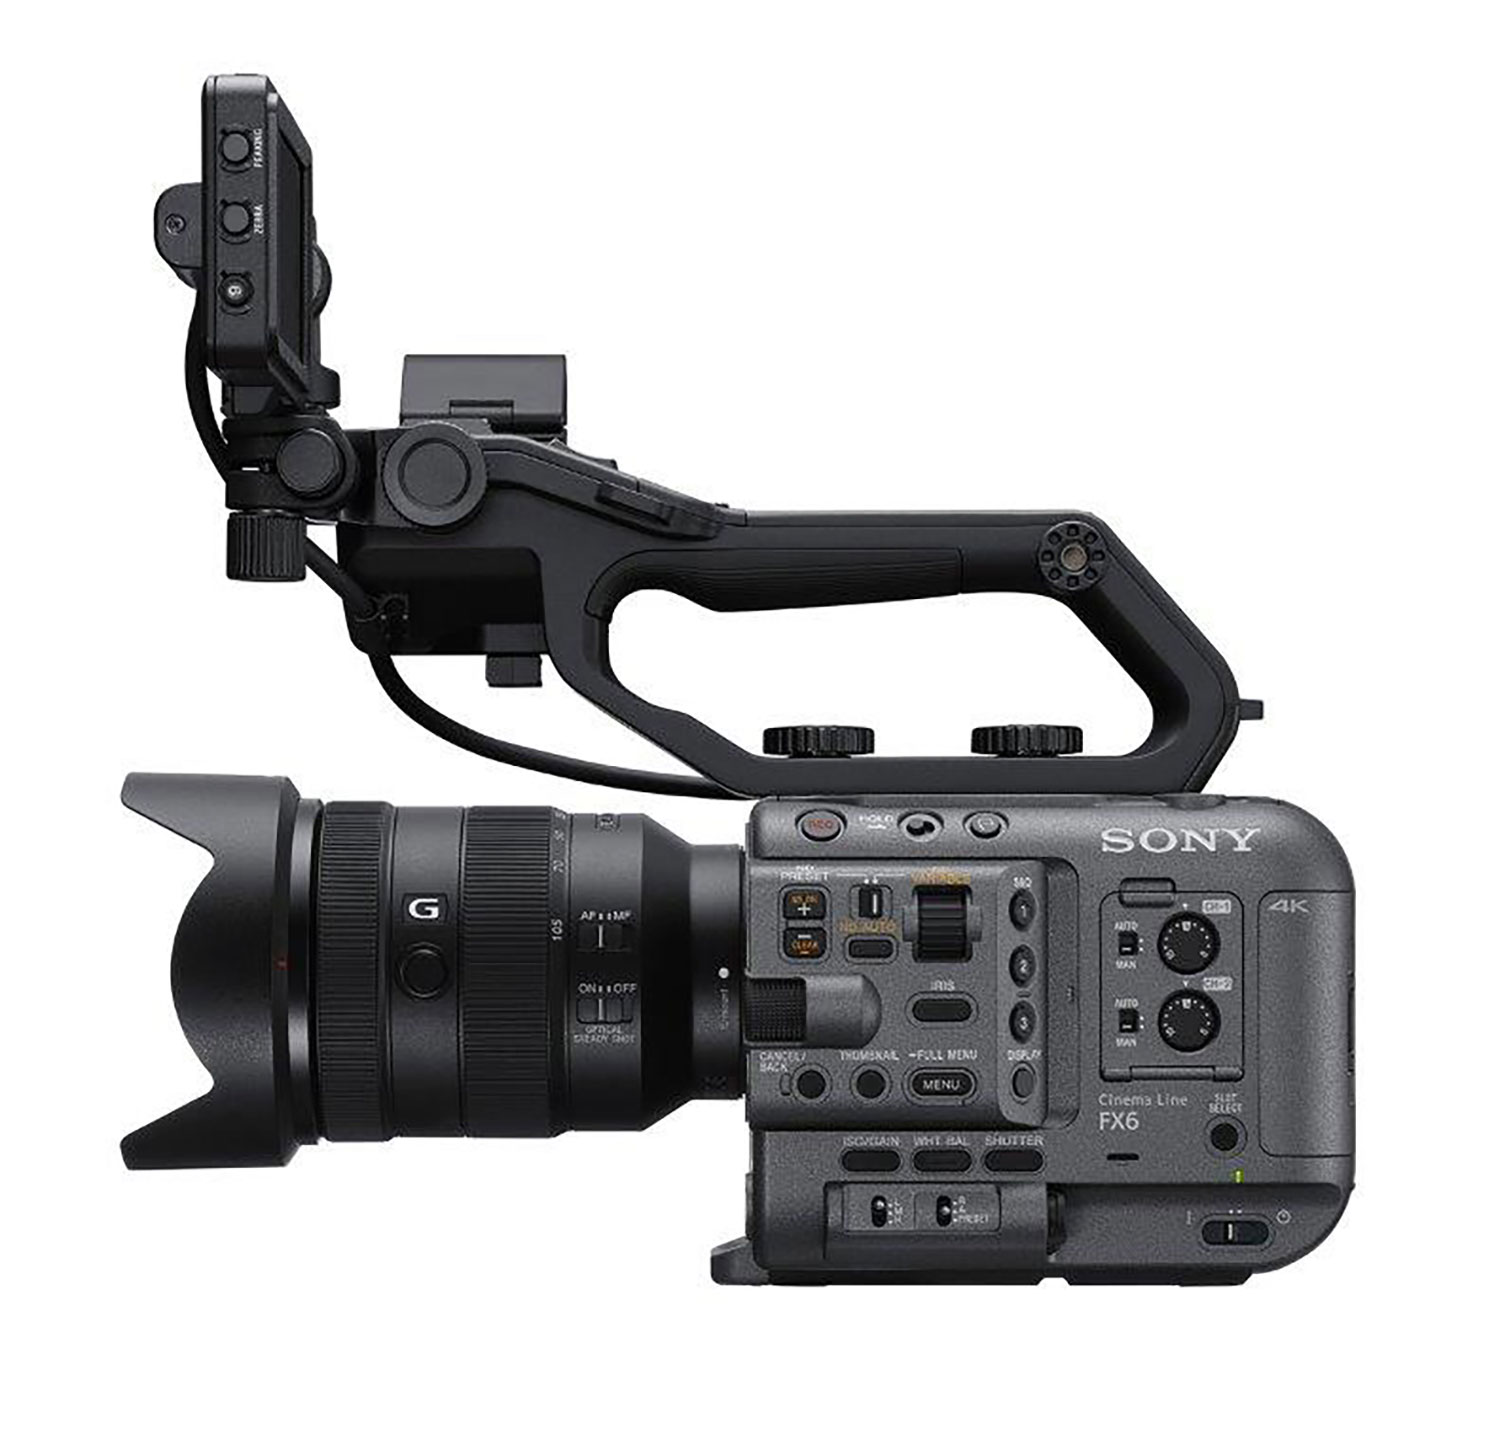 Sony FX6 hire UK